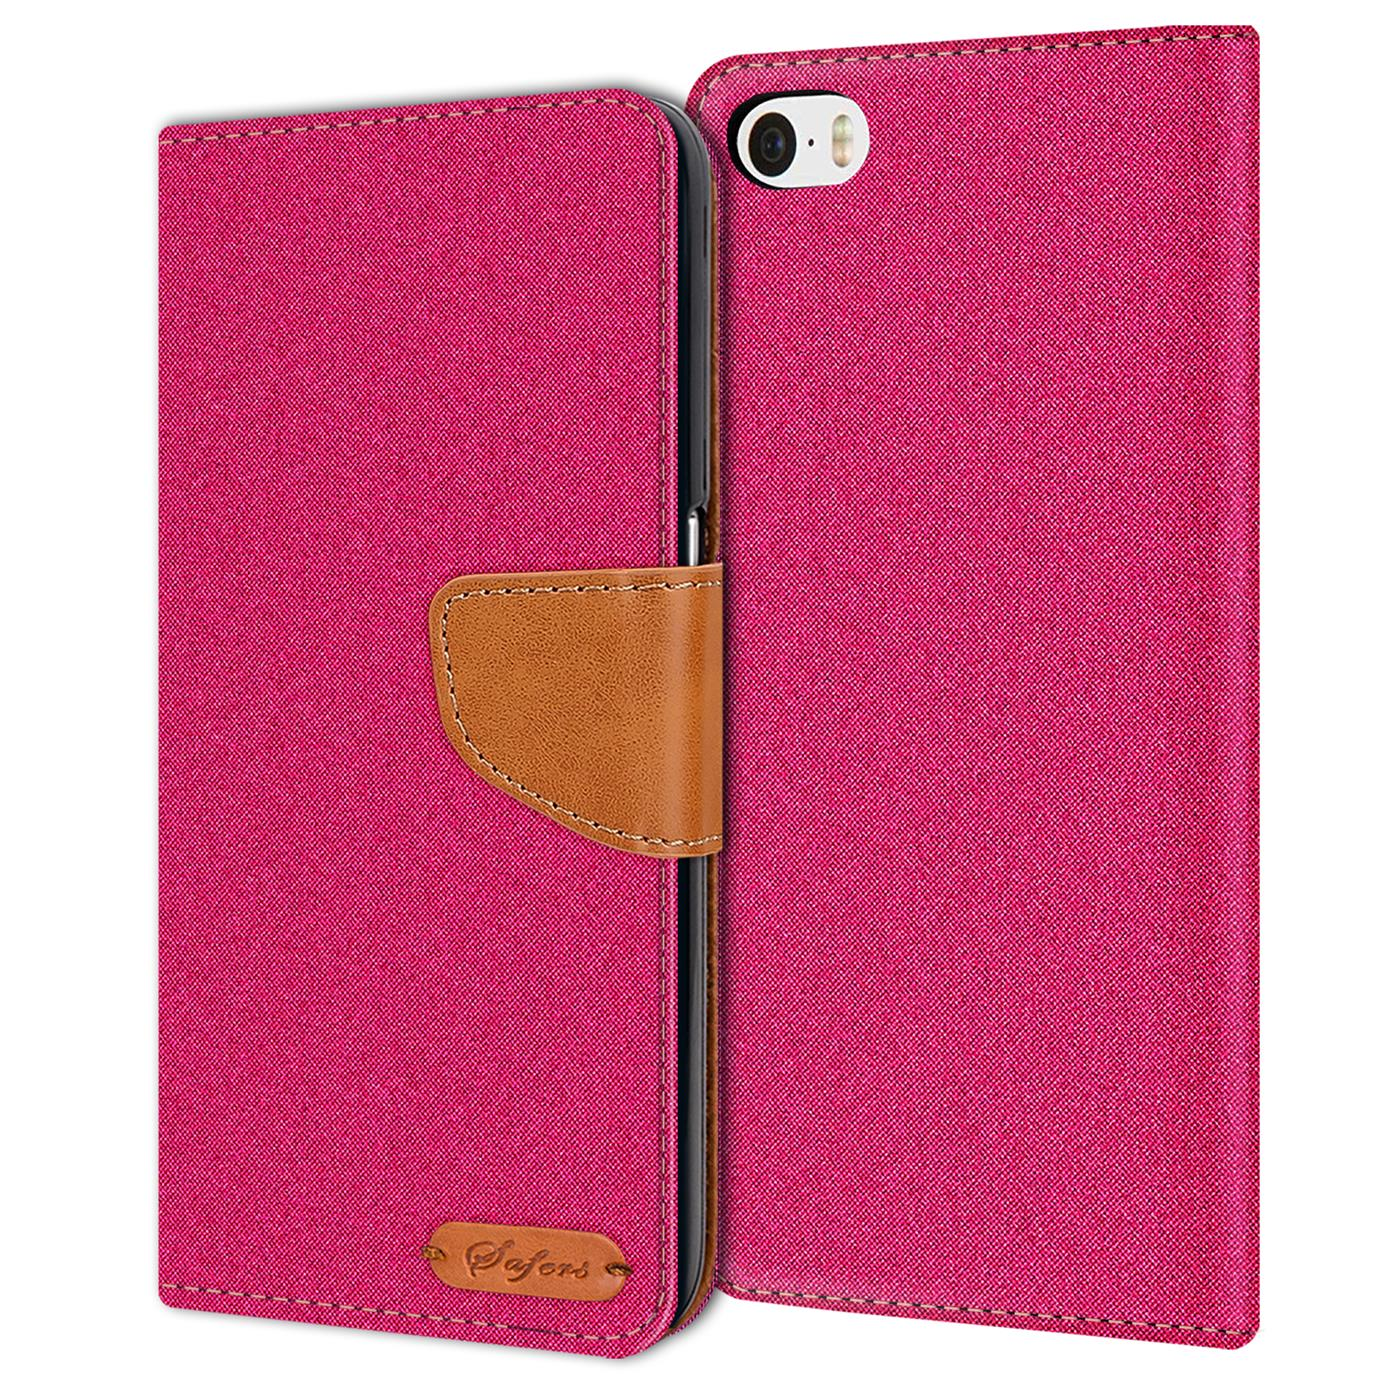 Apple-iPhone-5-5s-SE-Phone-PU-Leather-Magnetic-Flip-Case-Wallet-Denim-Cover-Slim thumbnail 17